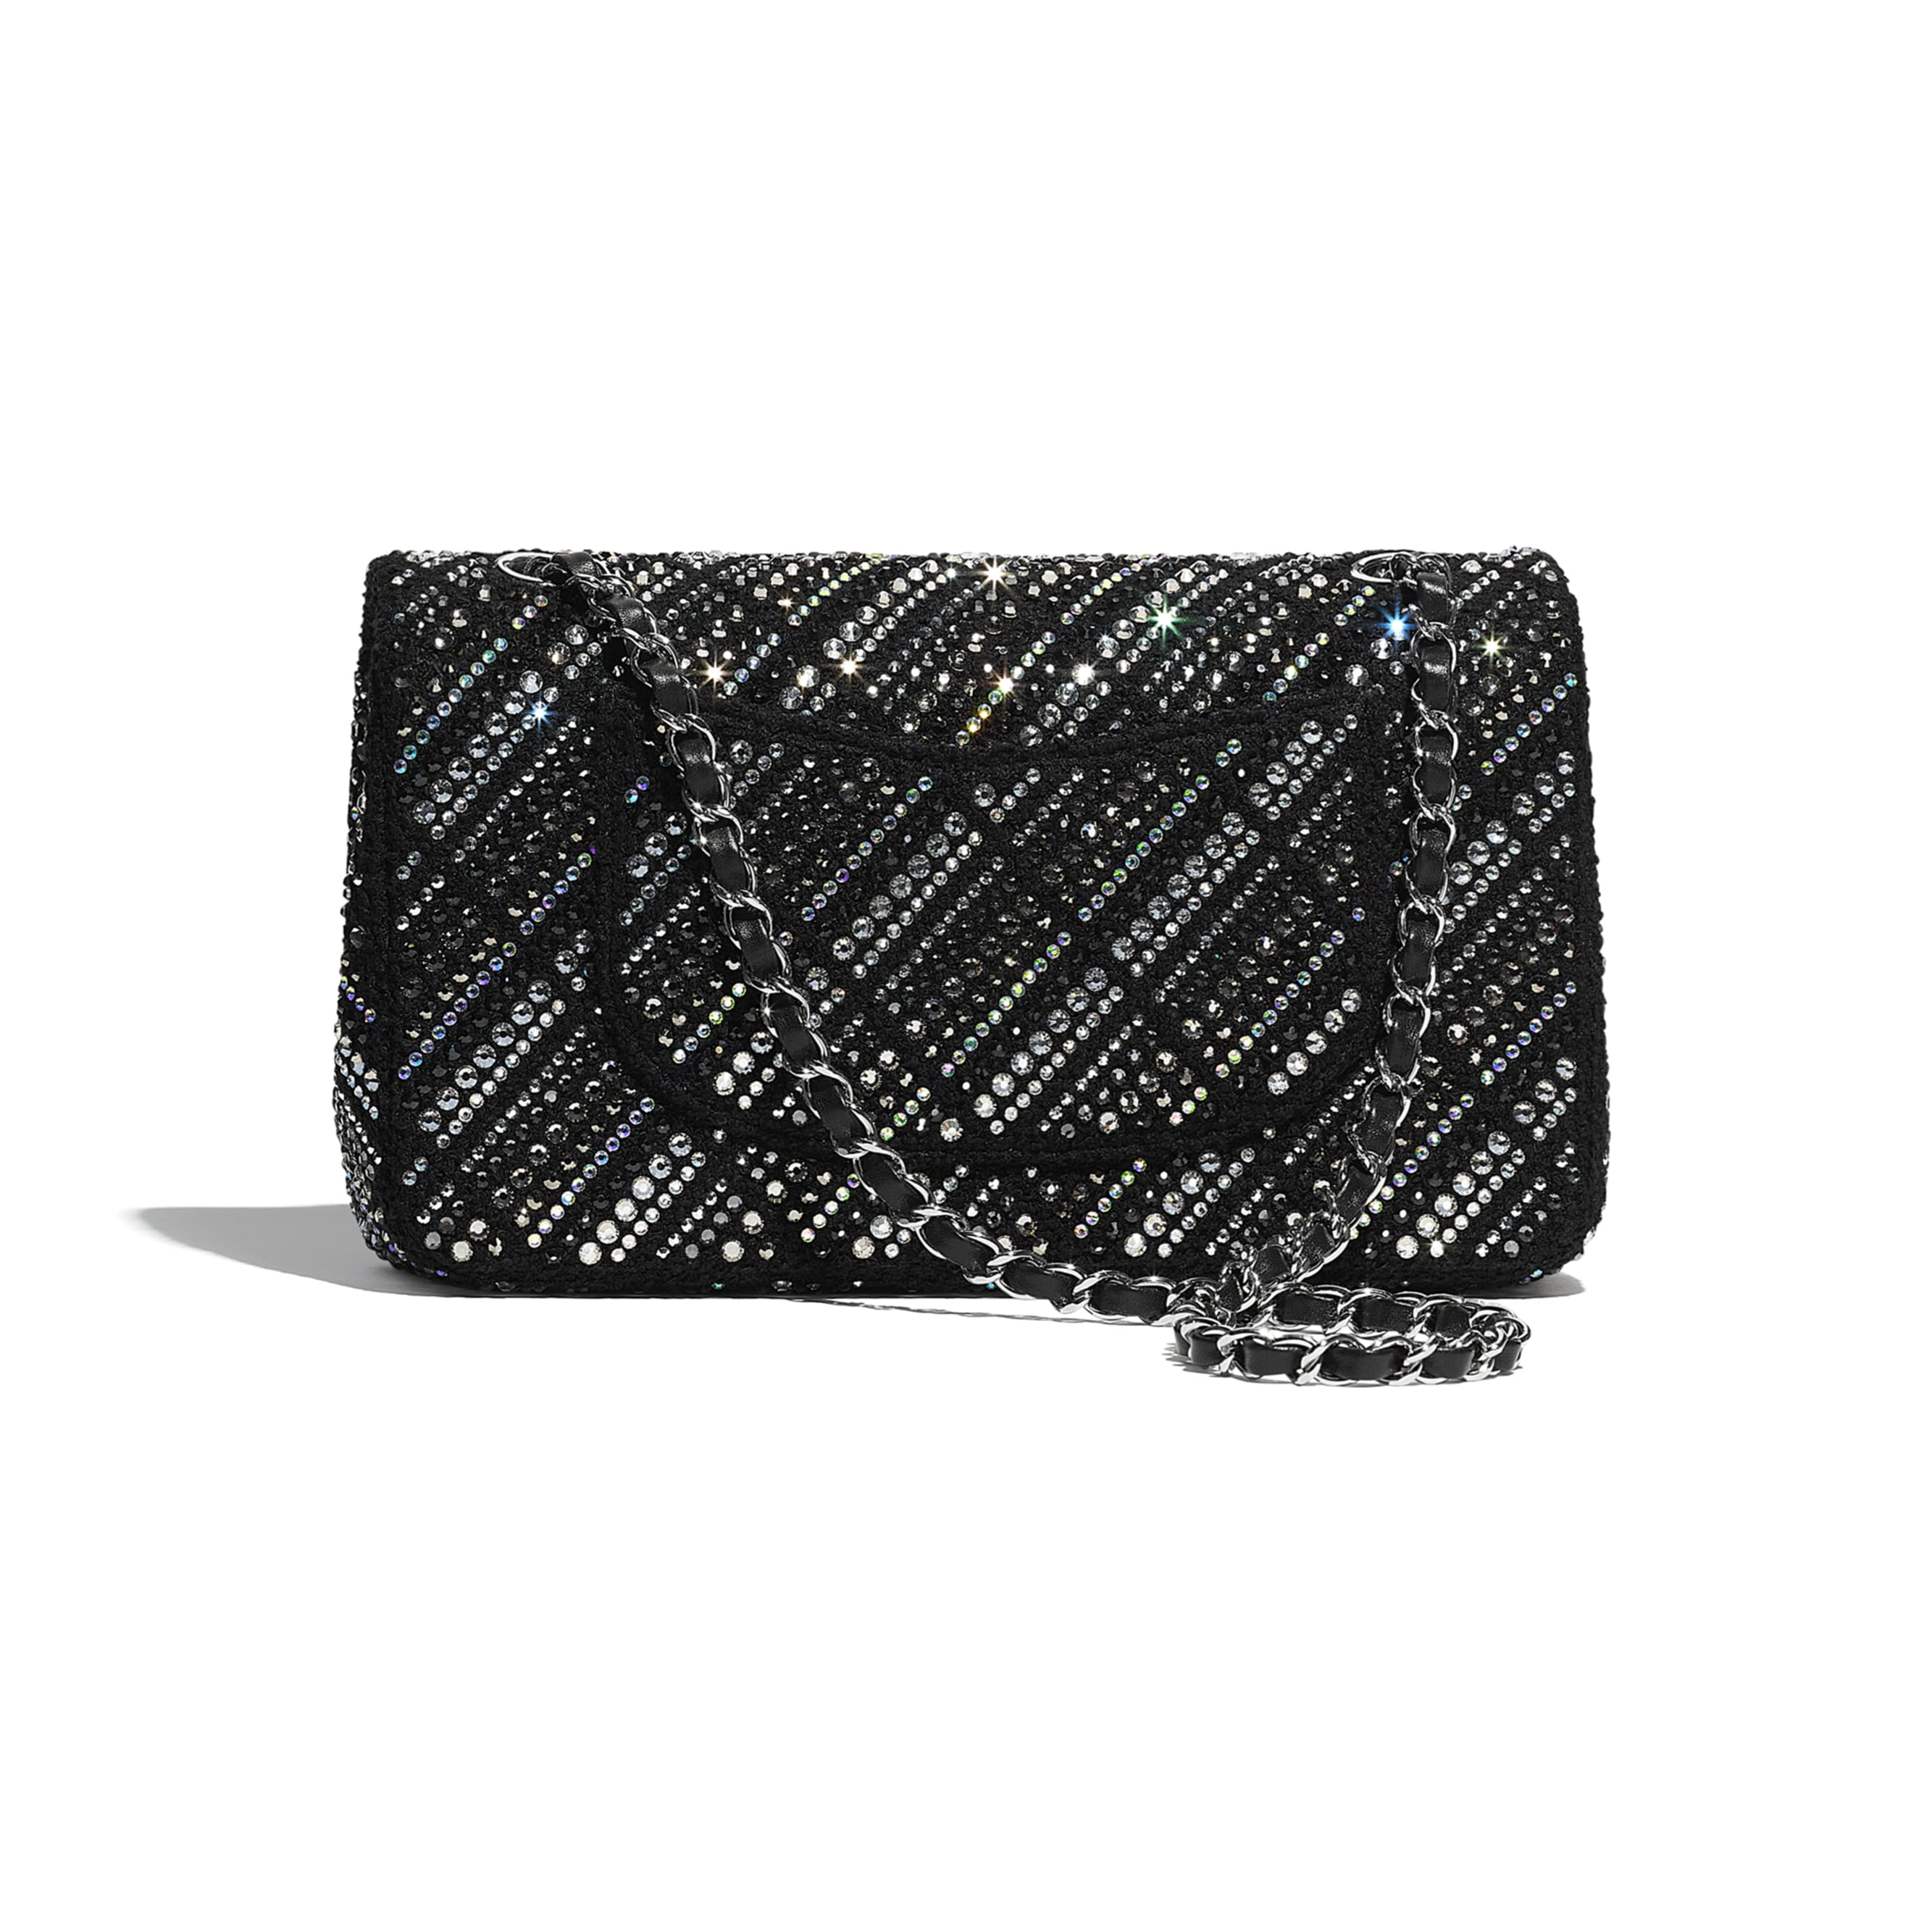 Classic Handbag - Black - Tweed, Diamantés & Silver Metal - CHANEL - Alternative view - see standard sized version